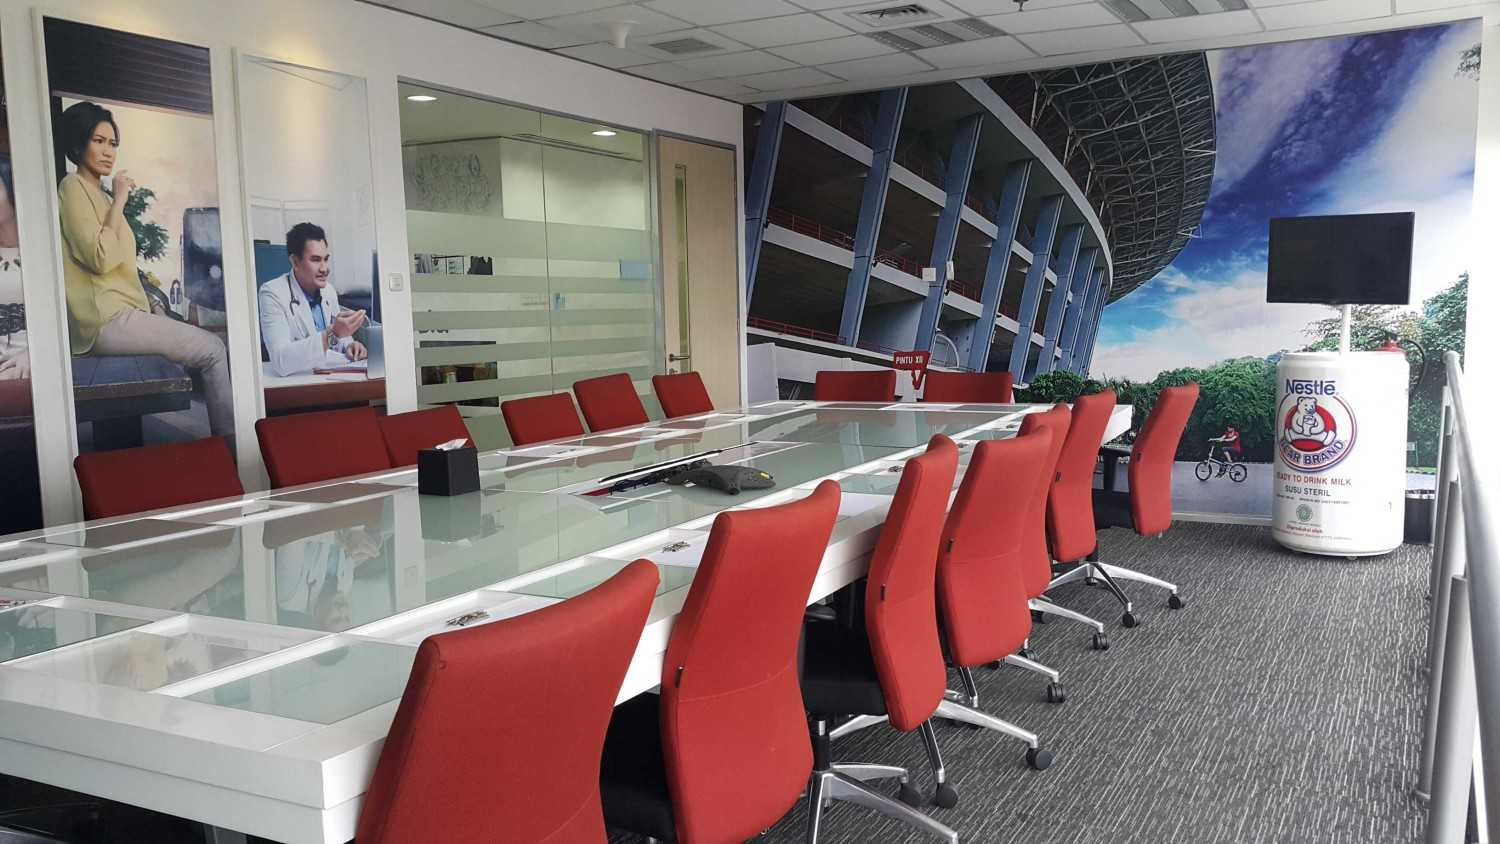 Tms Creative Nestle Meeting Room Aneka Tambang Building South Jakarta Aneka Tambang Building South Jakarta Meeting Room Modern 12391